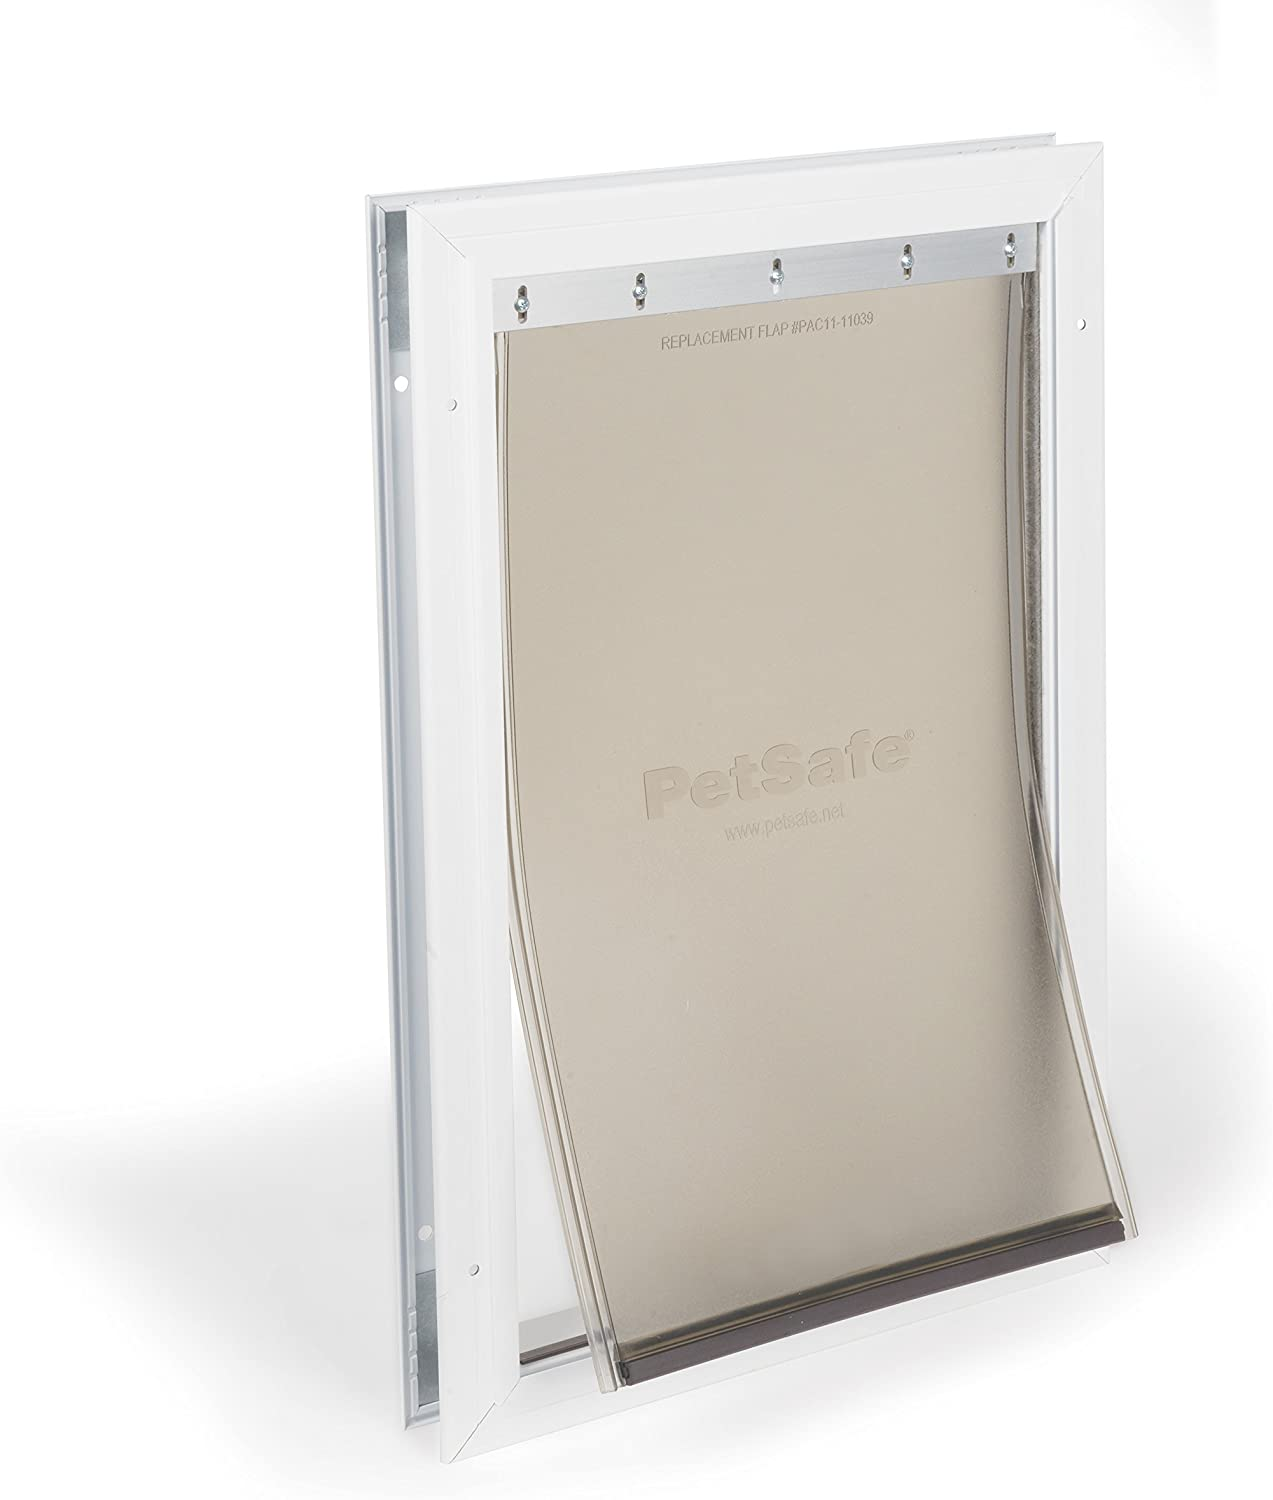 PetSafe Freedom Aluminum Pet Door for Dogs and Cats, White, Tinted Vinyl Flap